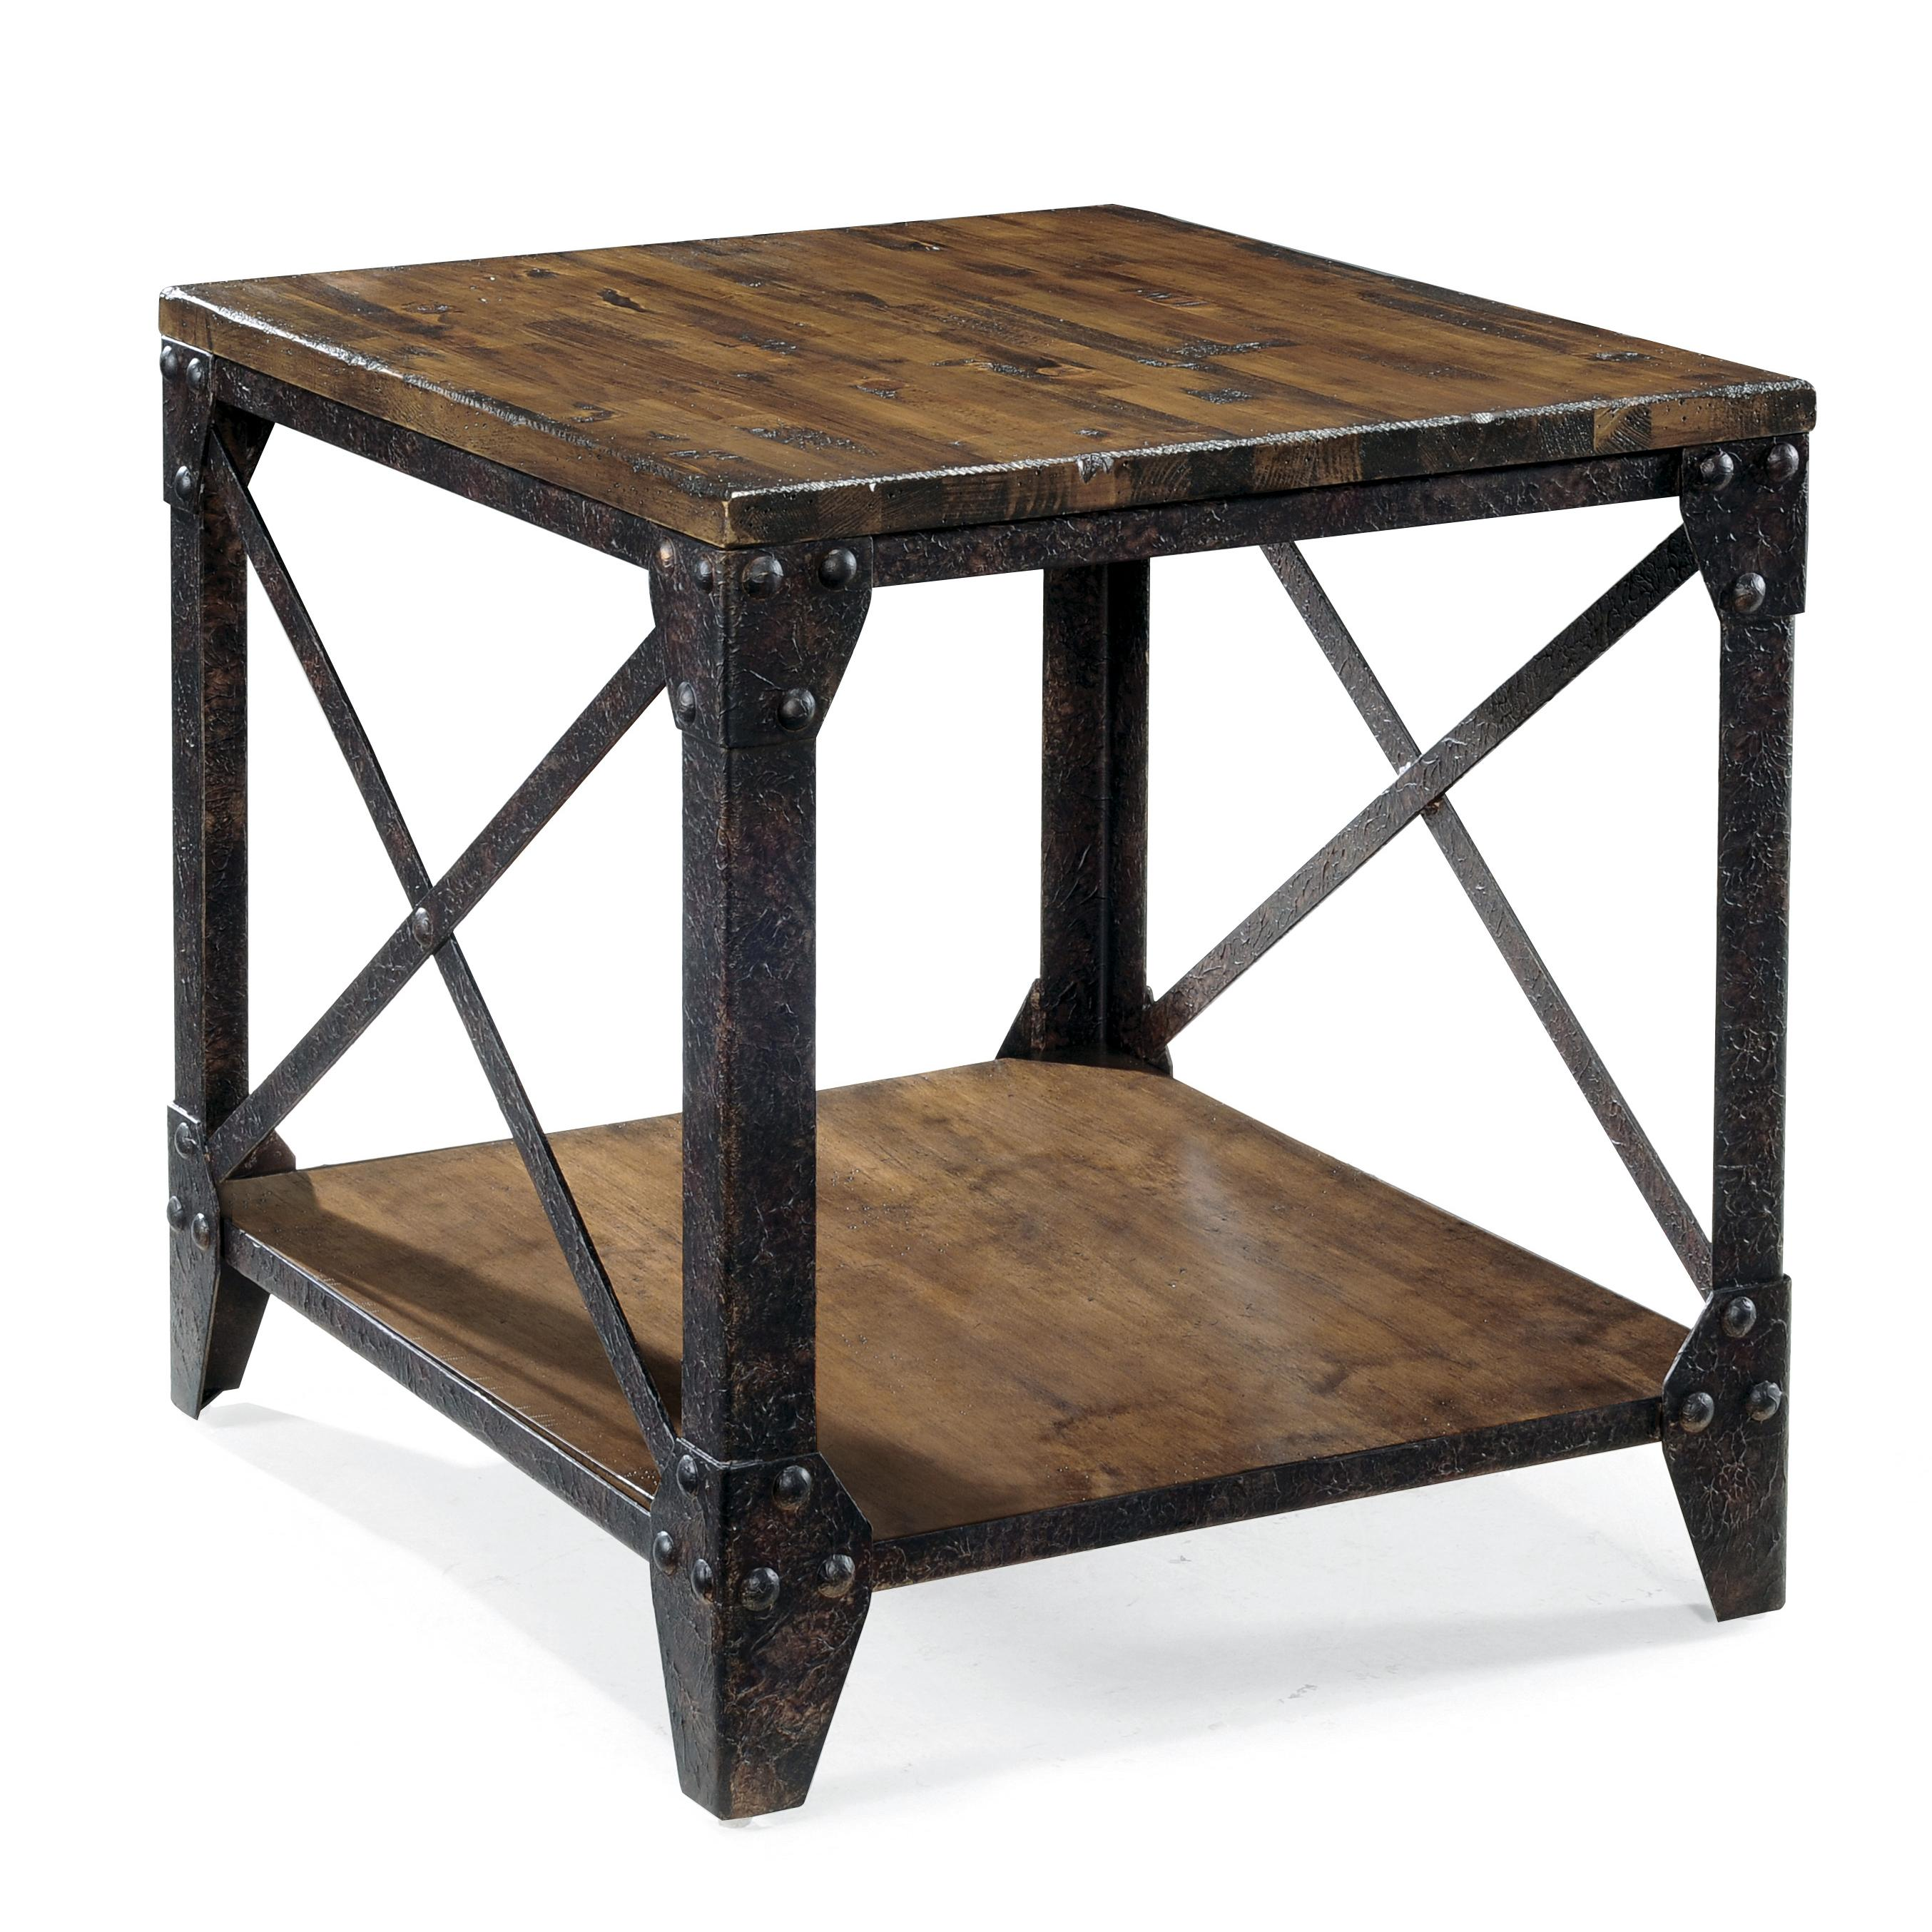 Industrial Look End Tables Rectangular End Table With Rustic Iron Legs By Magnussen